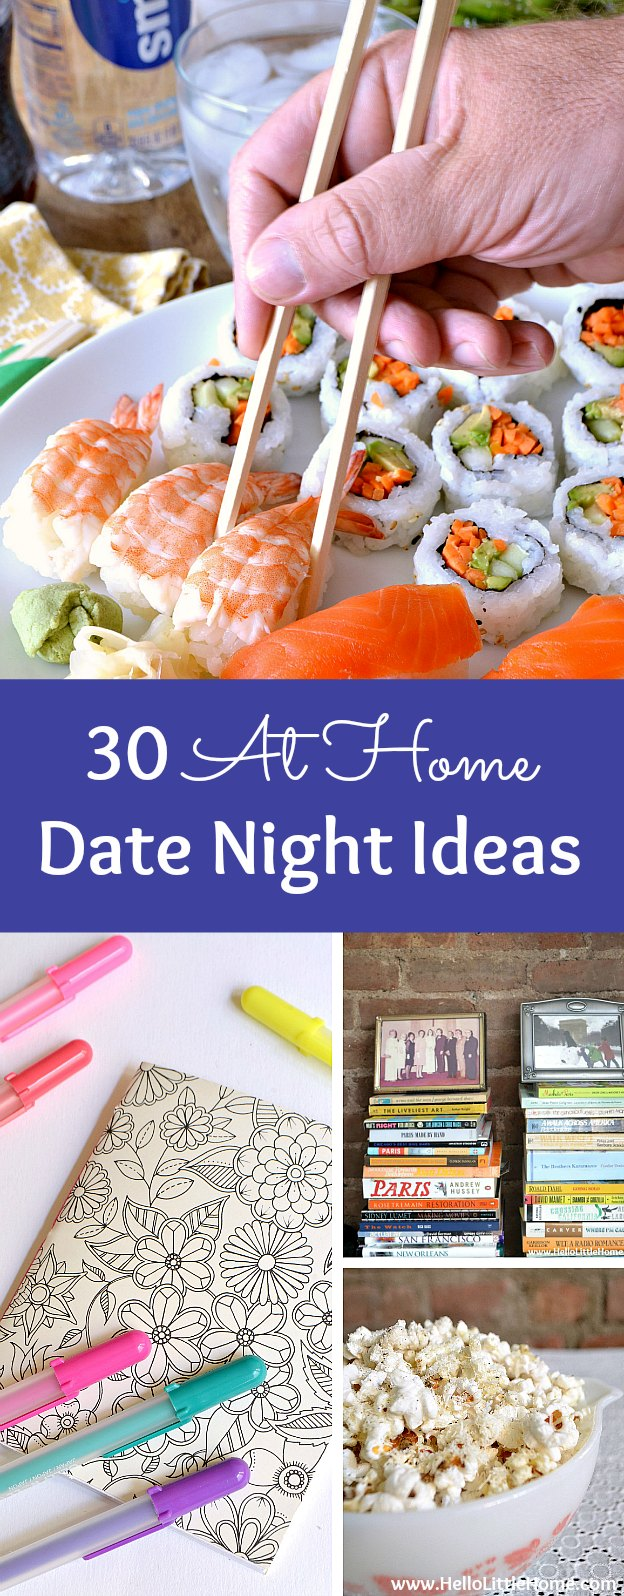 30 Easy At Home Date Night Ideas! Save a little money and plan a creative, fun, and romantic stay at home date night! Perfect for married couples or any busy couple. Skip the babysitter, put the kids to bed, and try these simple tips for spending quality with your sweetie! | Hello Little Home